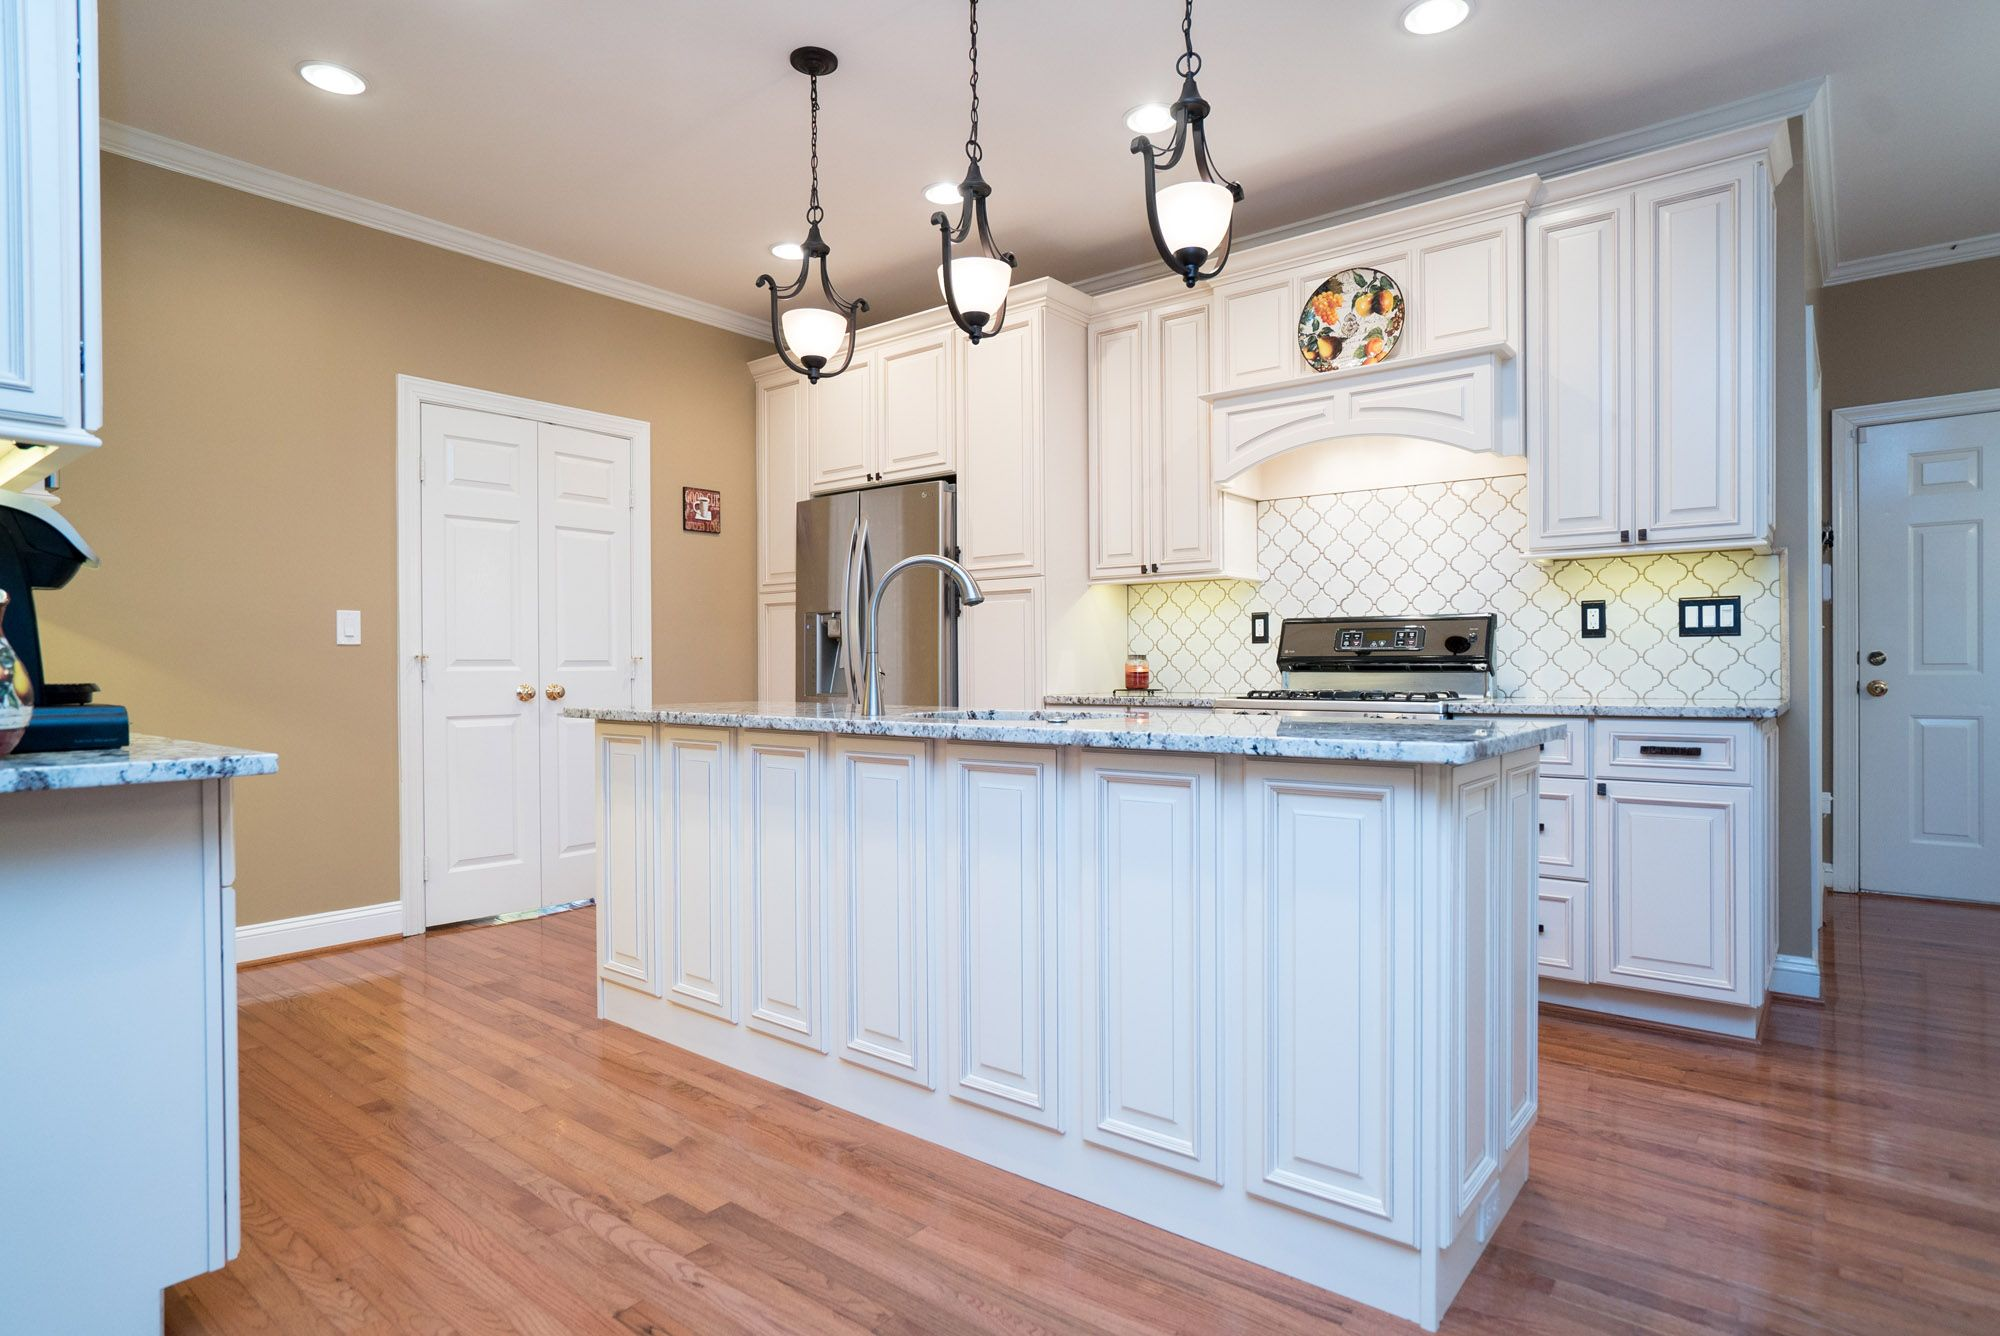 Kitchen remodeling in Leesburg VA Kitchen remodeling